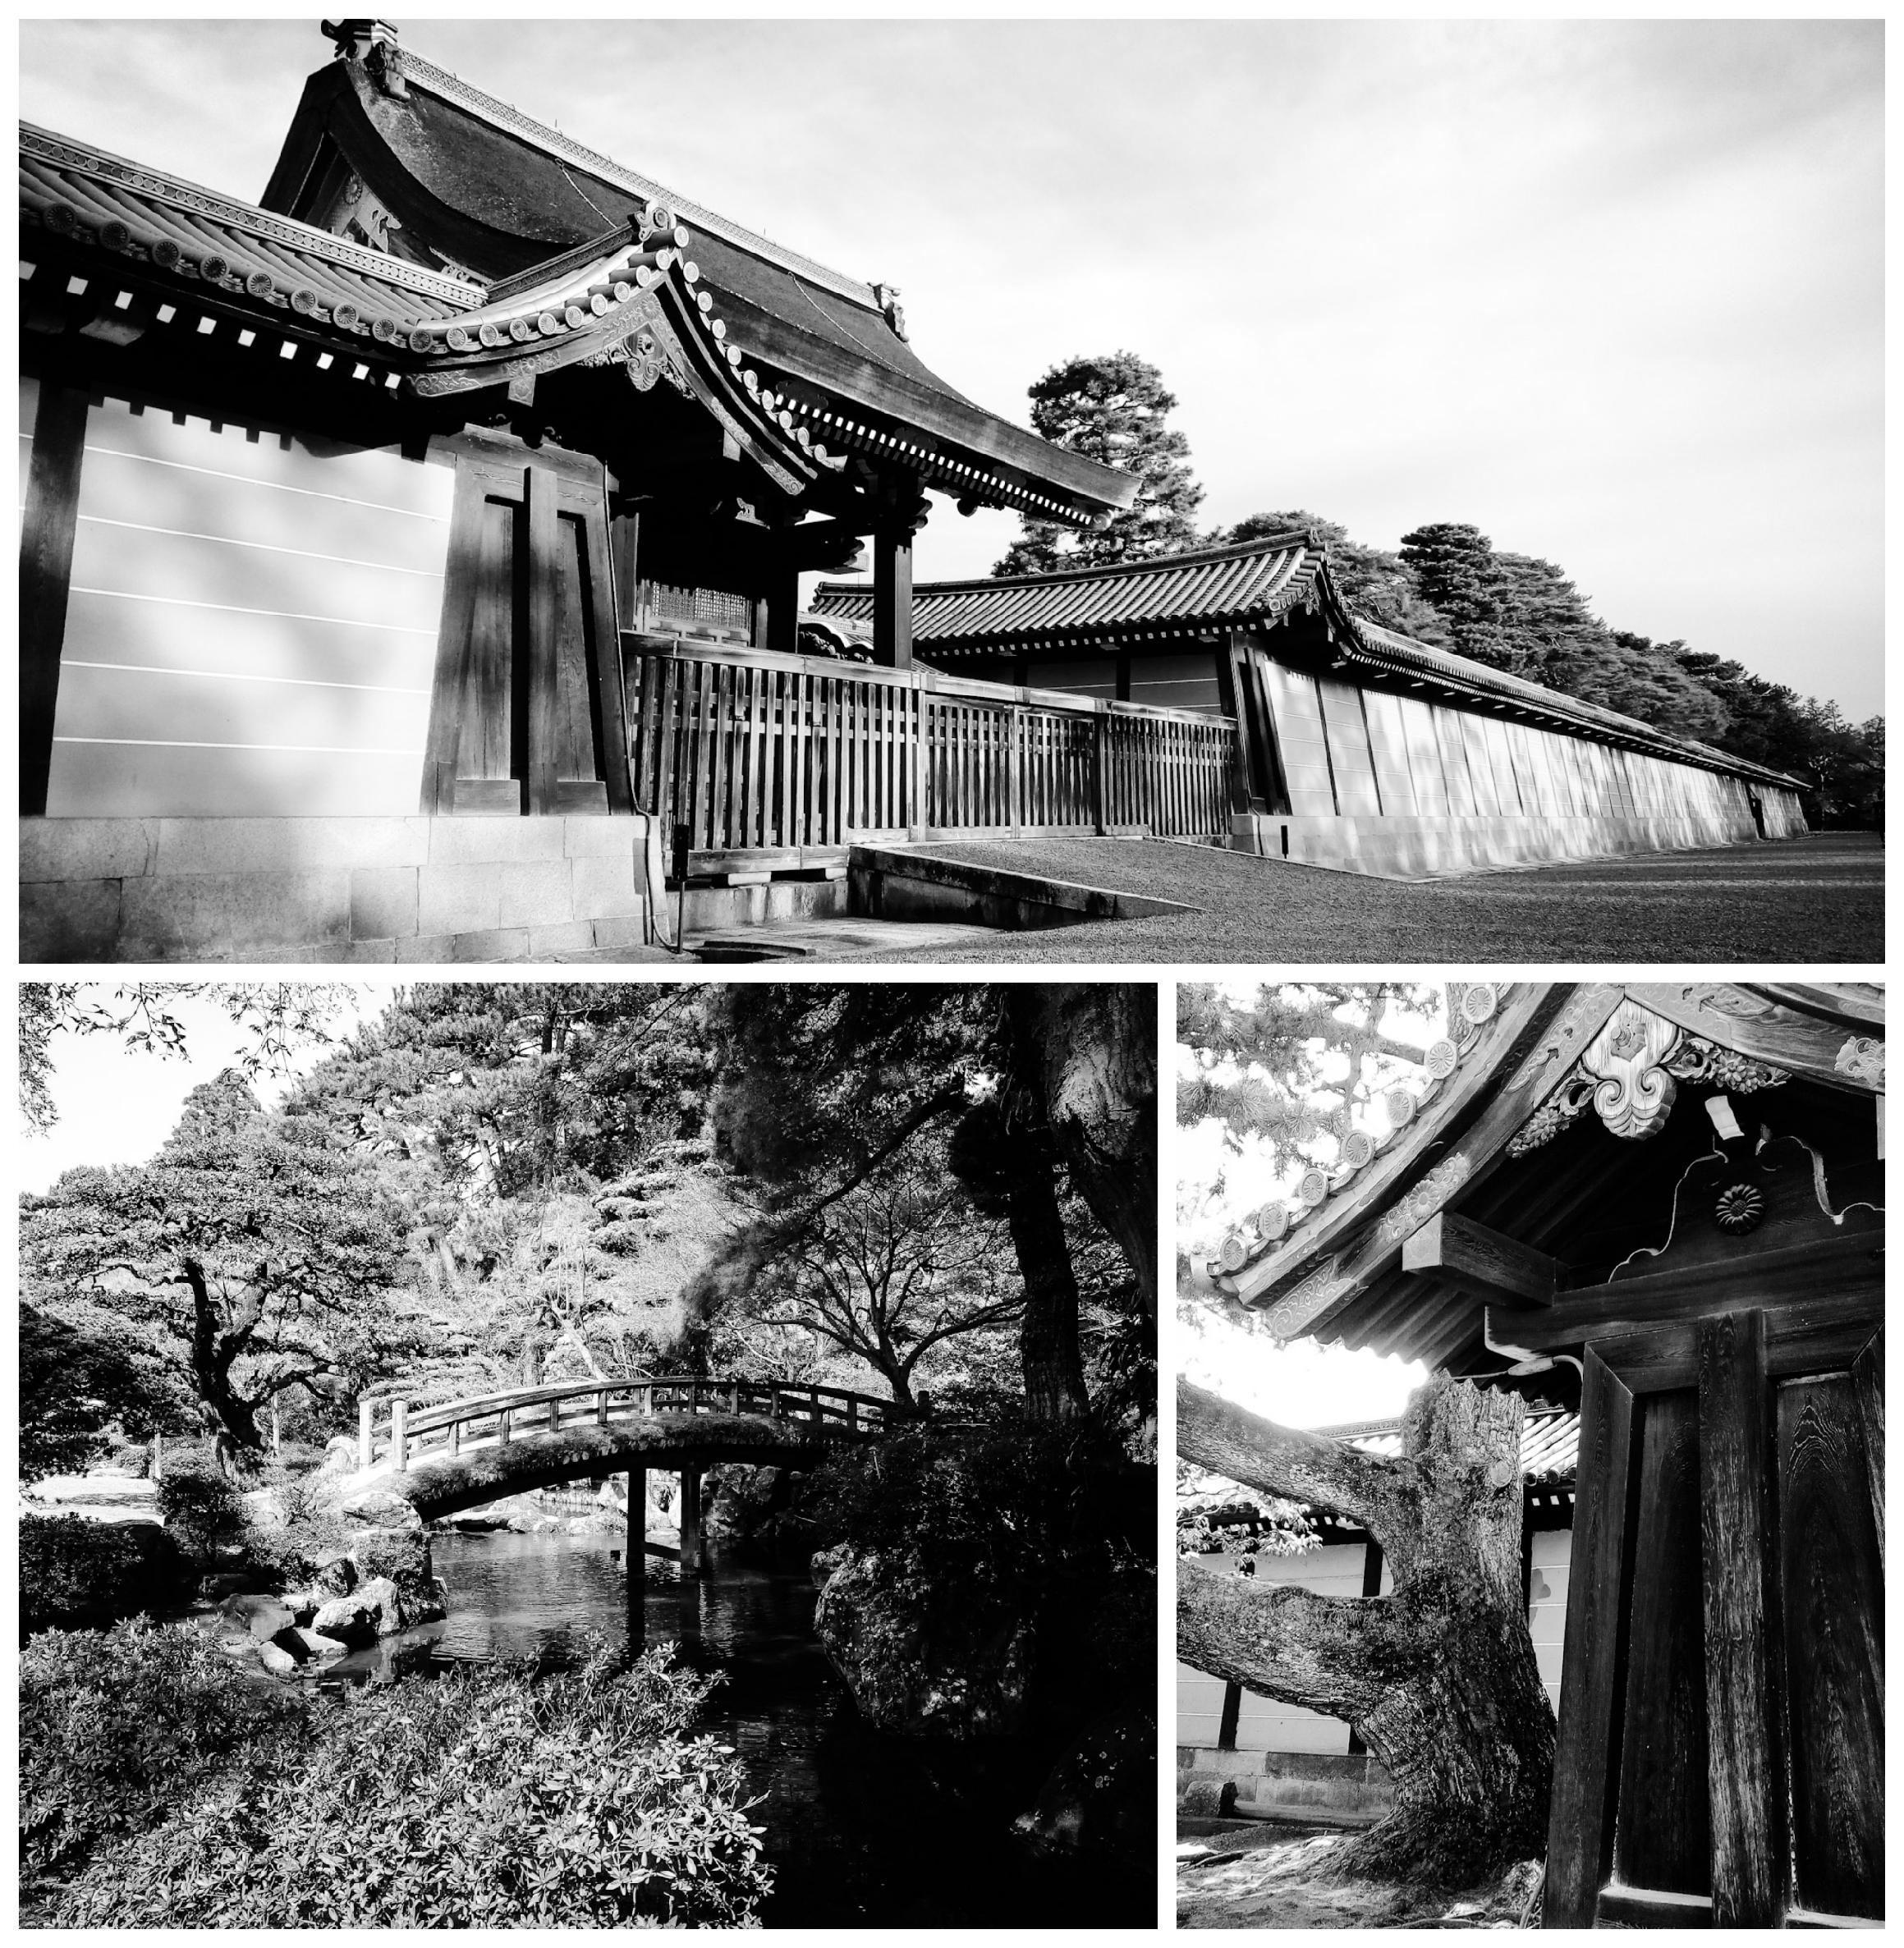 Urban Photos - Kamigyo Ward, Kyoto, Japan.'Kyoto Imperial Palace.' Officially the home of the Japanese Imperial Court, since the 12th century, and used as such even before then, Kyoto Imperial Palace was only sidelined in 1869, after the Meiji Restoration. Just like many of Japan's great historical buildings, the Palace has burnt down and been reconstructed many times in its history. This is an apparent issue when you primarily build in wood. Even though the last reconstruction was in 1855, it may have been the most accurate at capturing the original design of the first Imperial Palace, from the Heian Period. sketchbookexplorer.com @davidasutton @sketchbookexplorer Facebook.com/davidanthonysutton #japan #kyoto #kamigyoward #kyotoimperialpalace #travel #travelblog #photography #cheeryblossom #cherryblossomseason